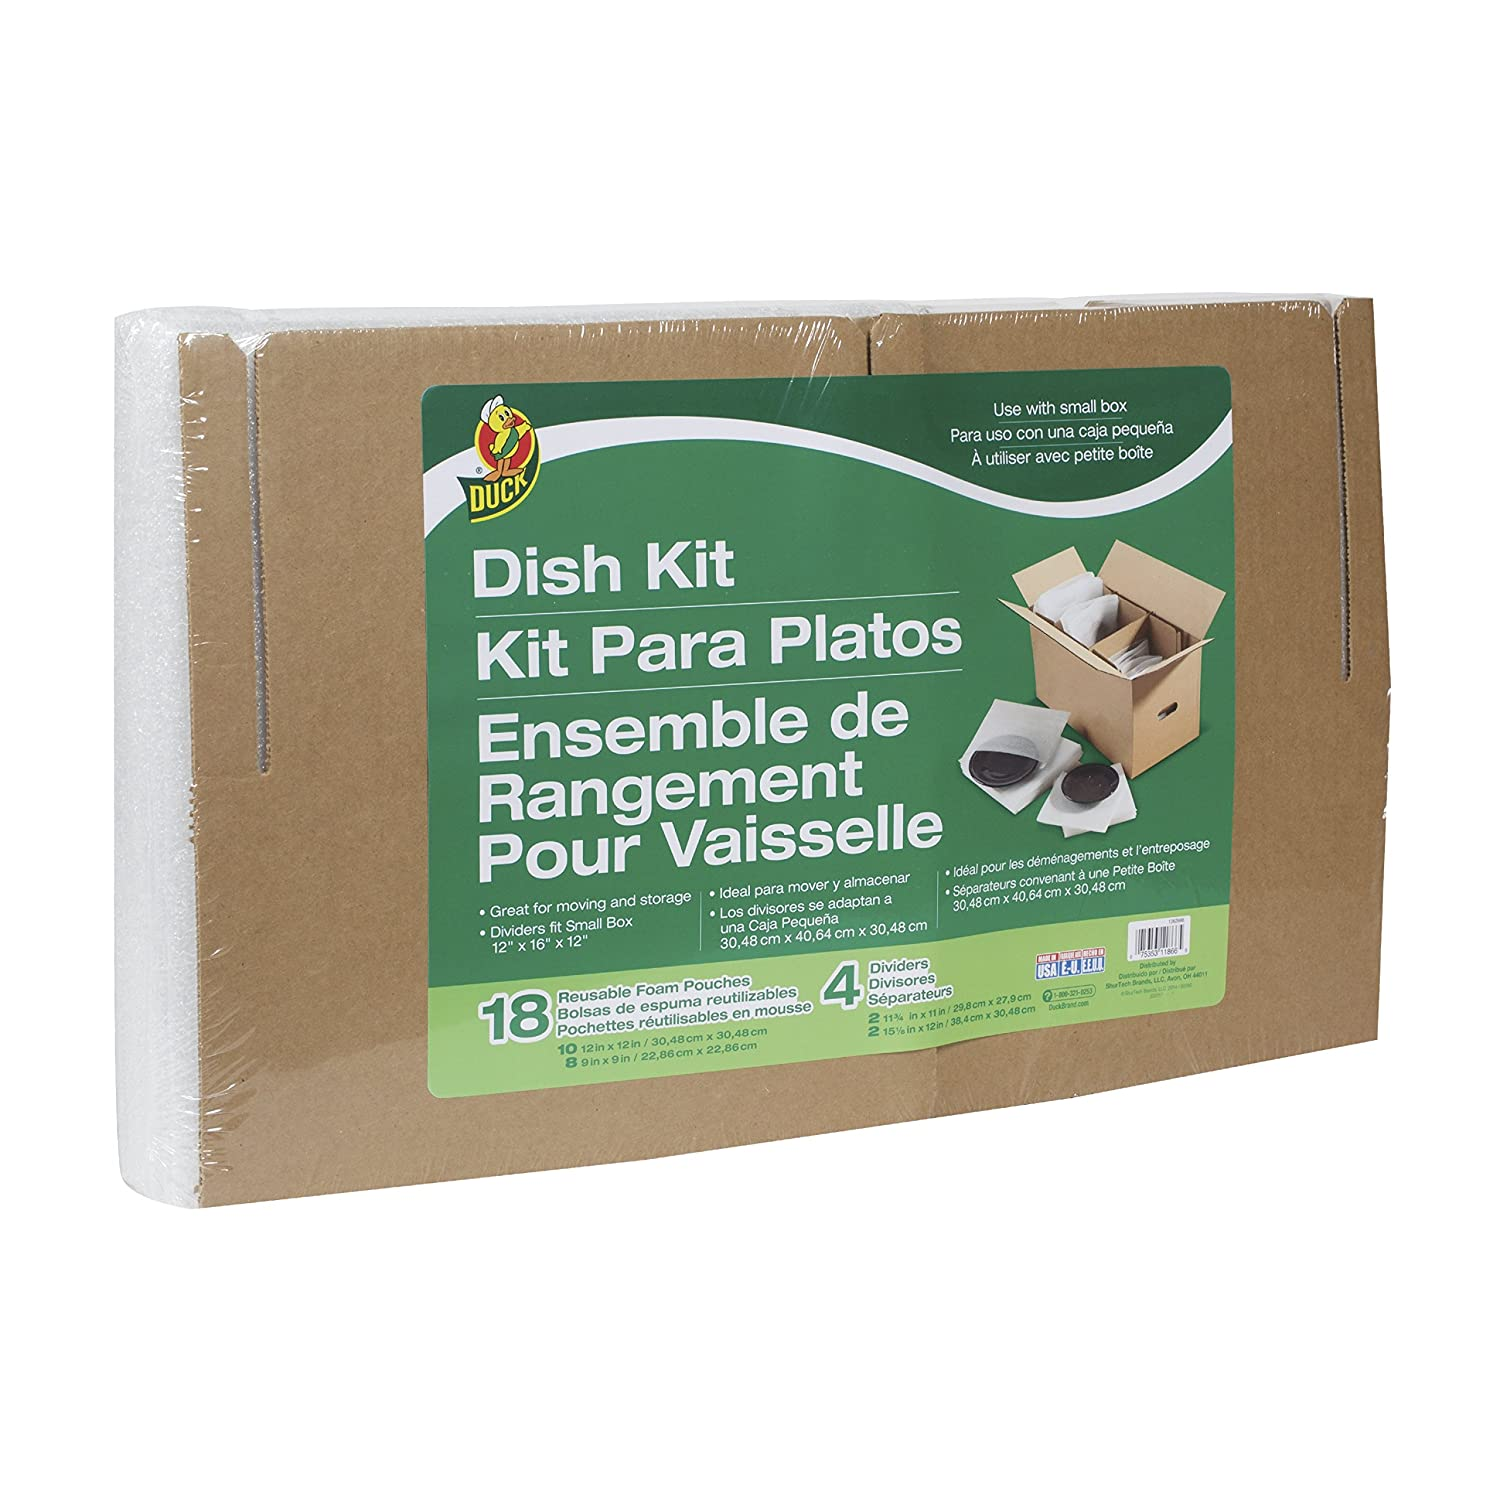 Duck Brand Dish Moving Kit, 4 Corrugate Dividers and 18 Foam Pouches, Box Not Included (1362686)